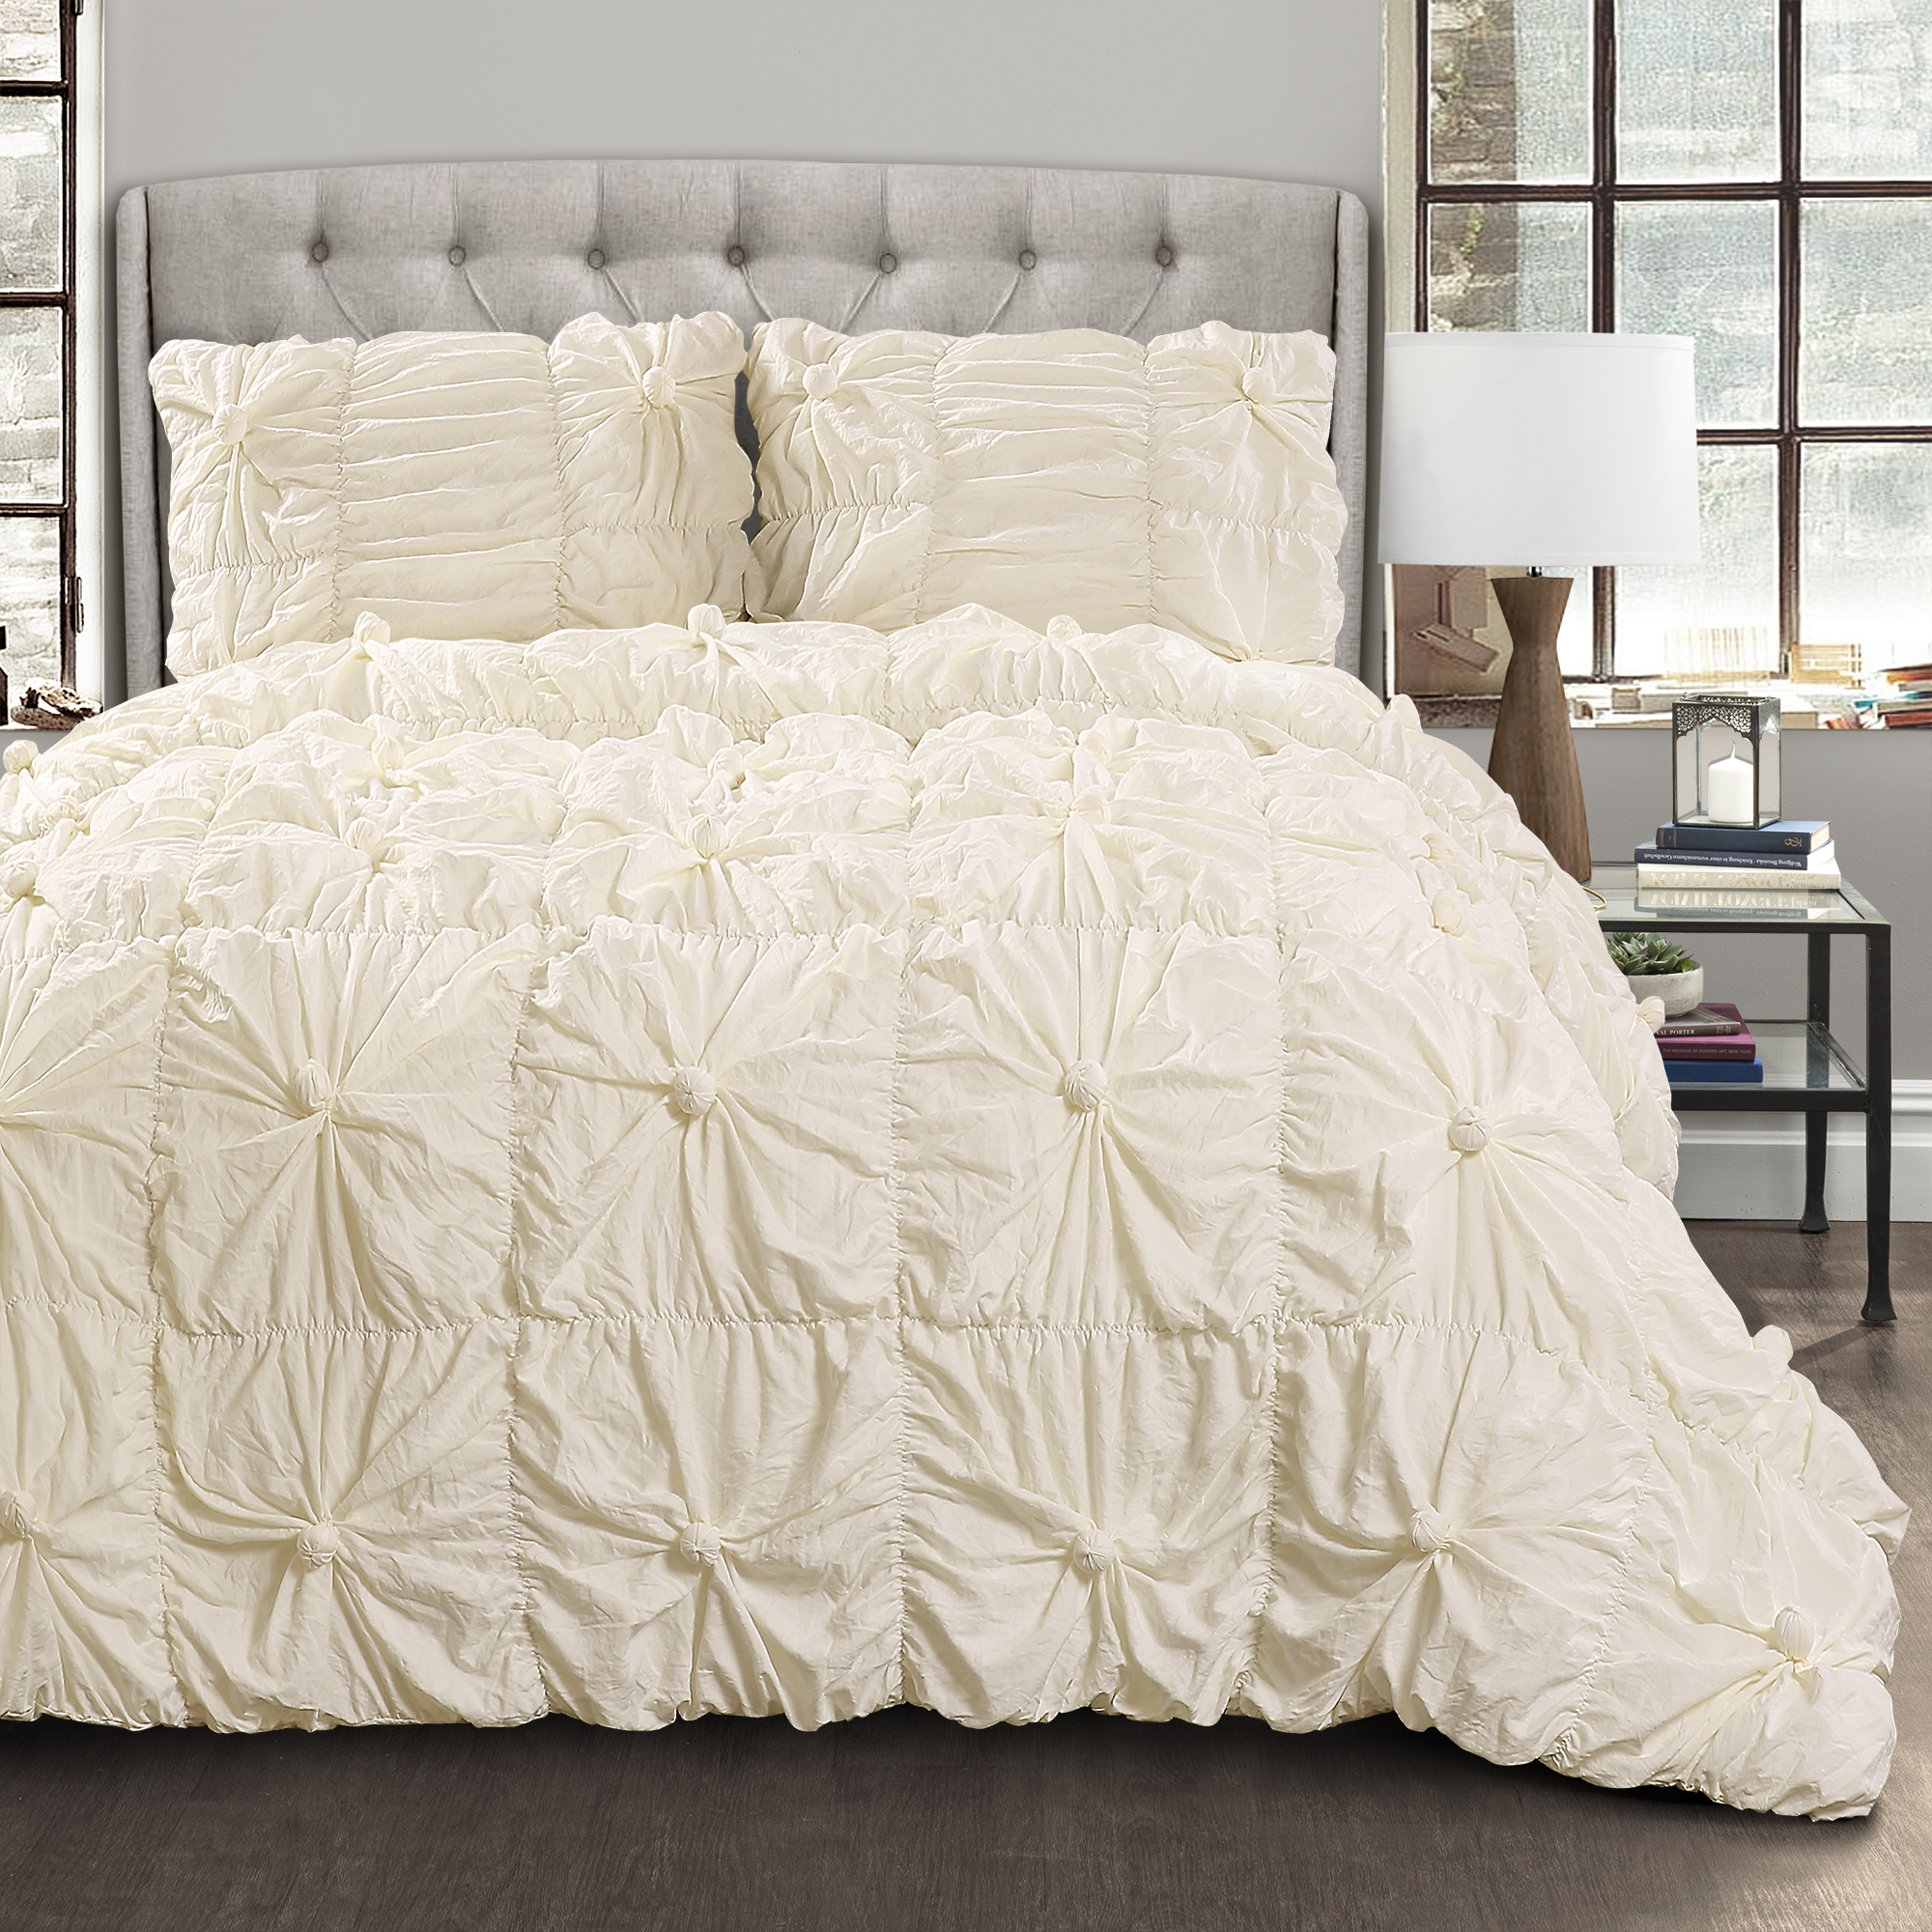 Bella Comforter Ivory 3Pc Set Full/Queen